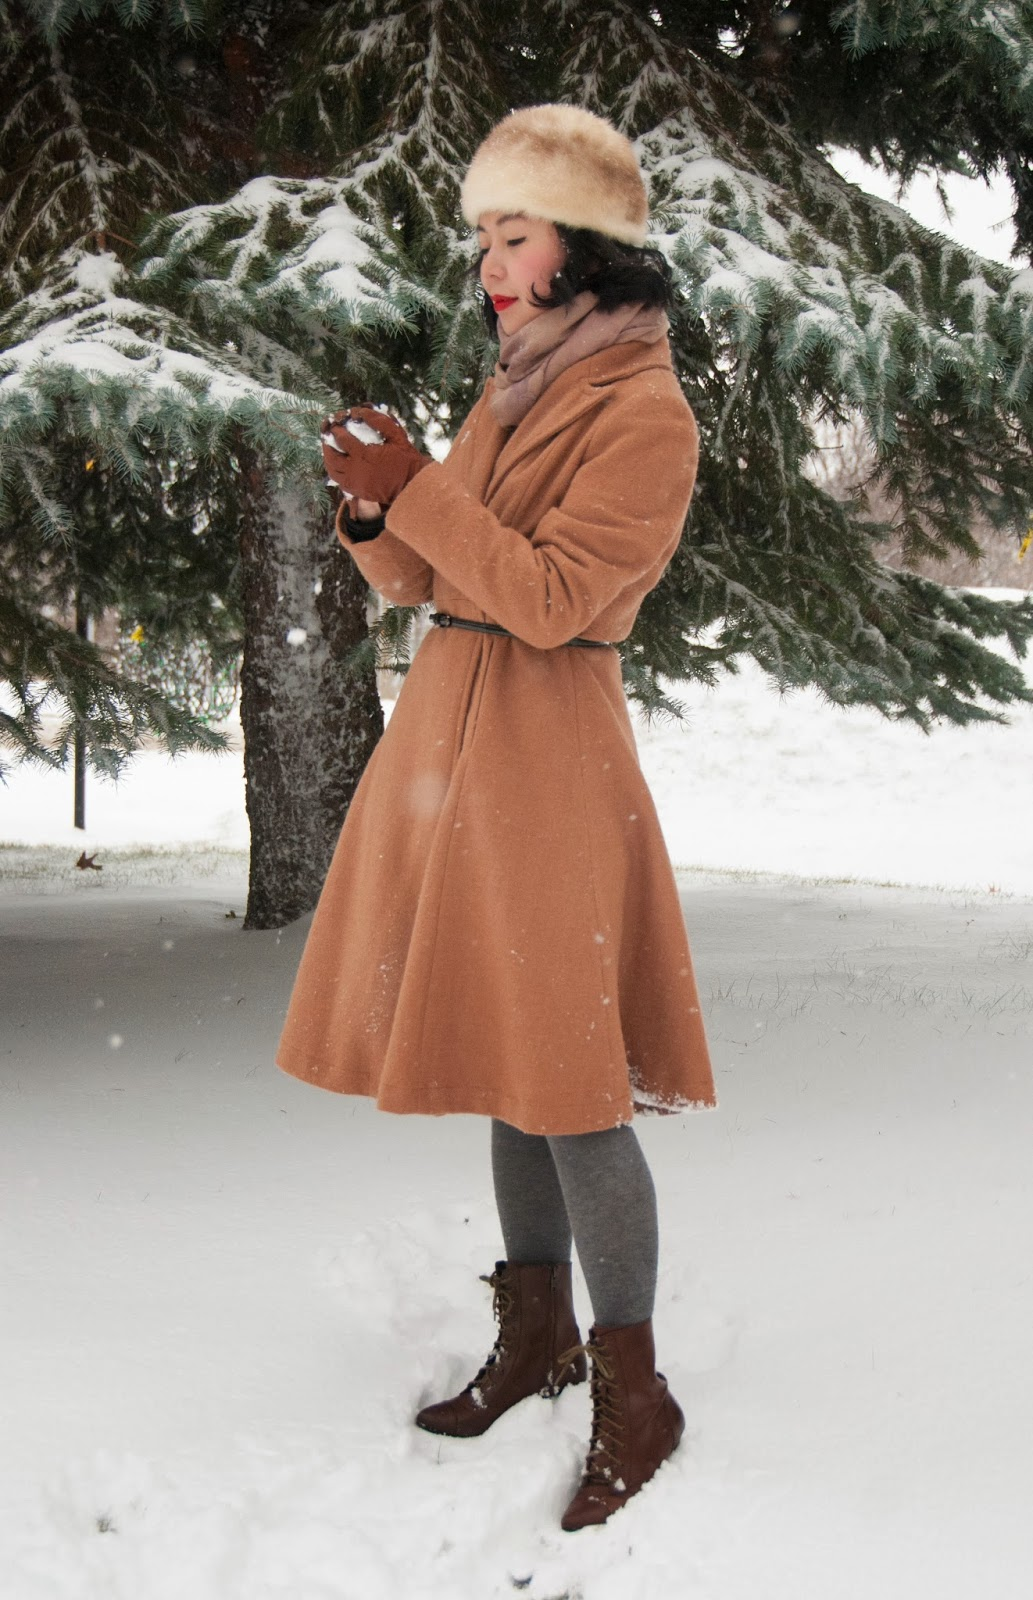 camel flared coat patent belt lace-up booties grey tights fur hat scarf red lips winter fashion